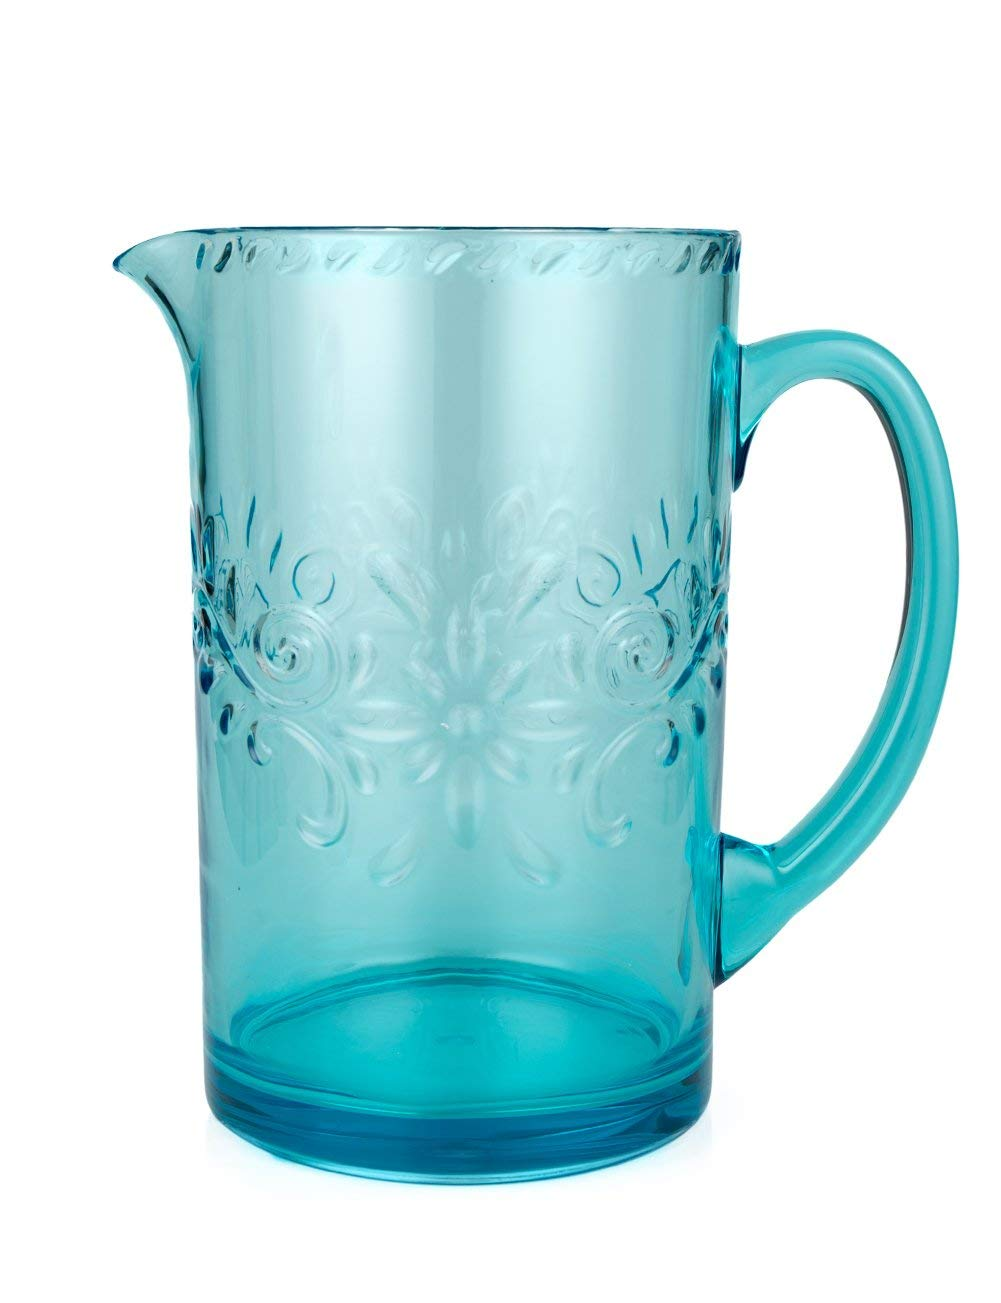 Plastic Pitcher of Blue Large (2.5 quart) BPA Free Dishwasher Safe Reusable Great for Homemade Juice & Iced Tea or for Glass Milk Bottles By AYT